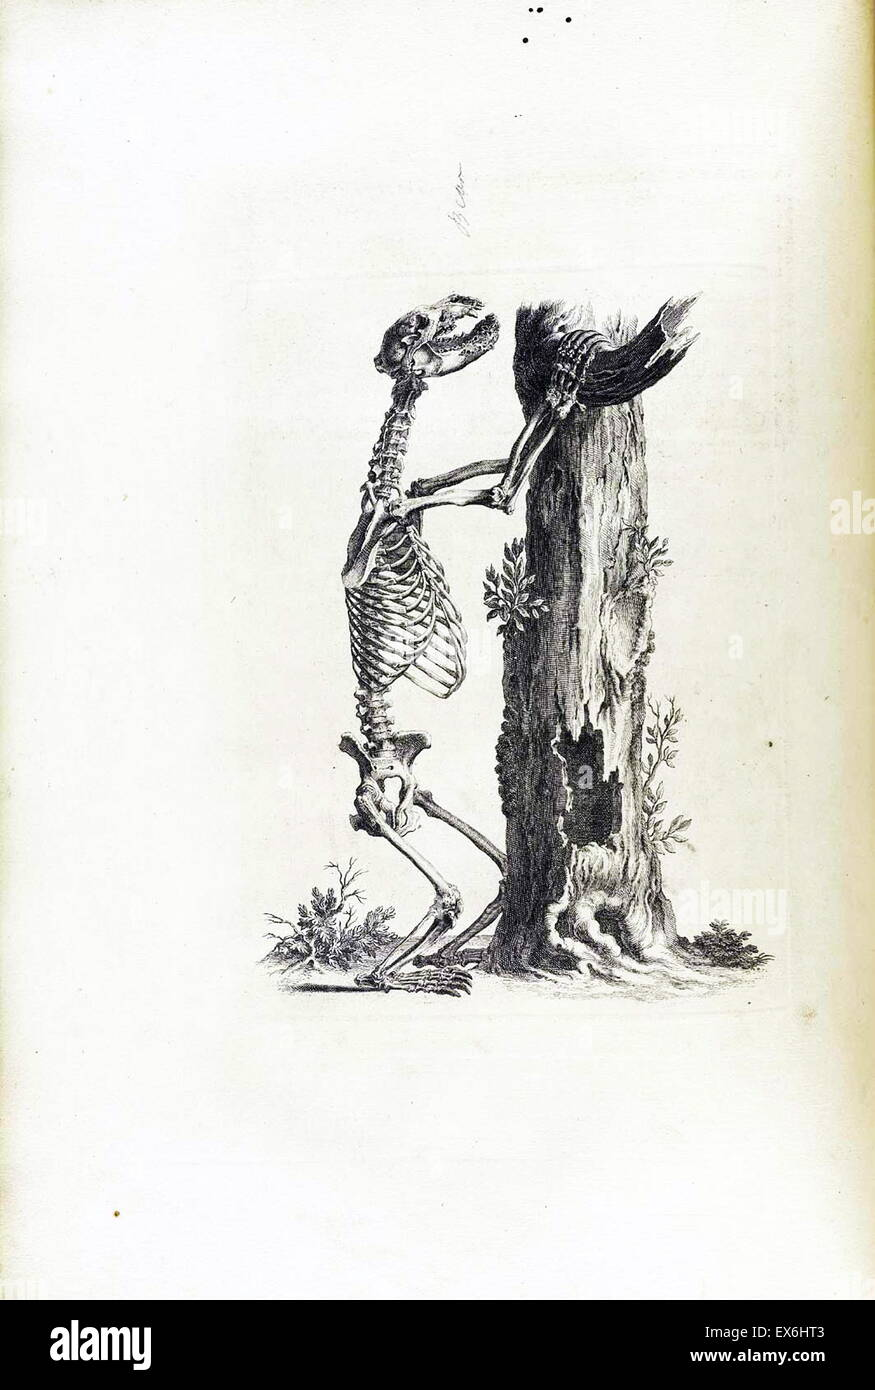 Dibujo anatómico de un oso por William Cheselden en Osteographia, o ...